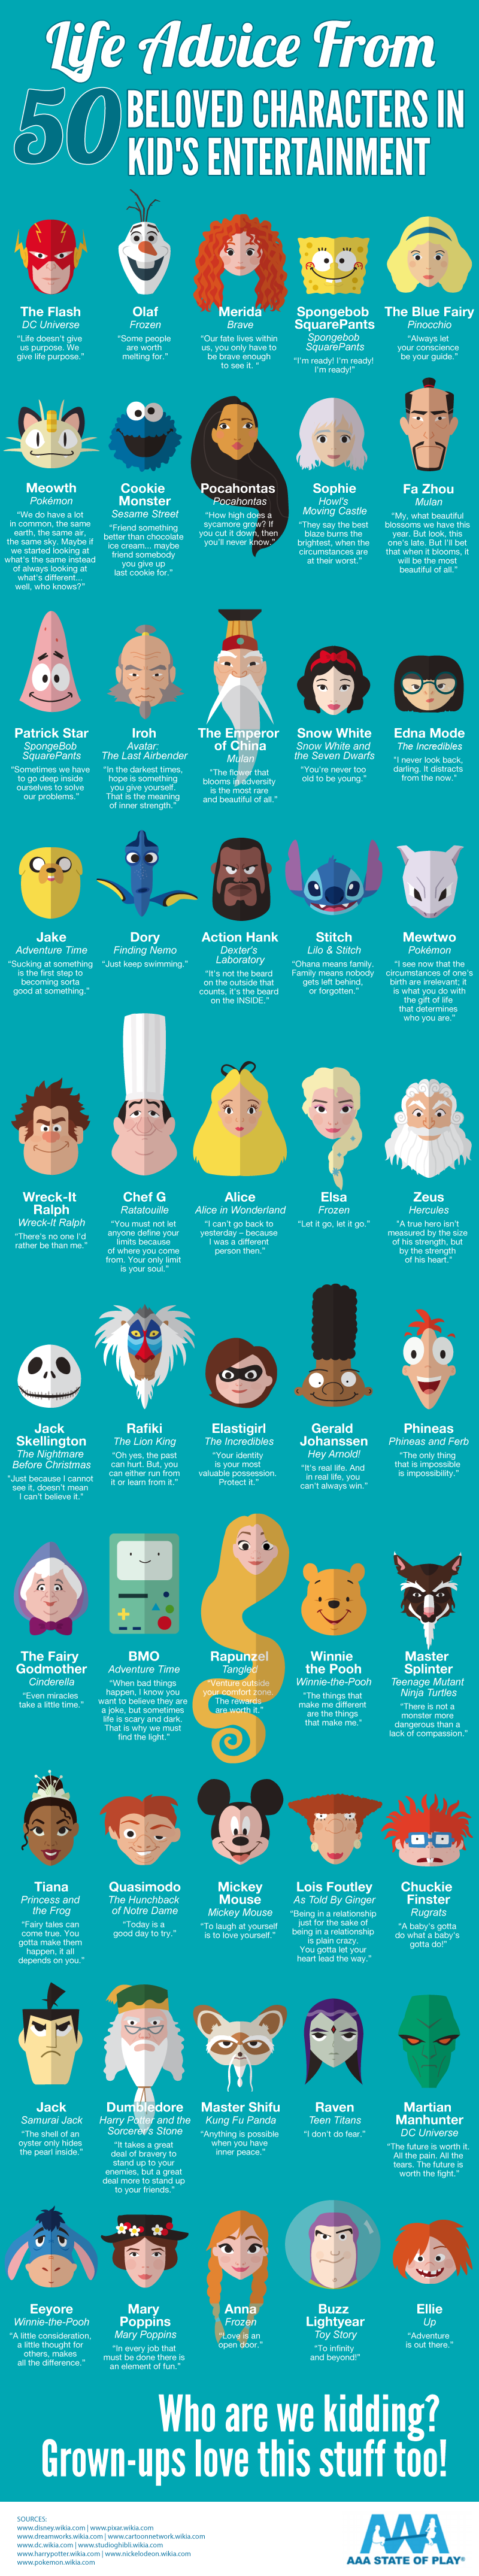 [Image] 50 inspiring quotes from famous cartoon characters